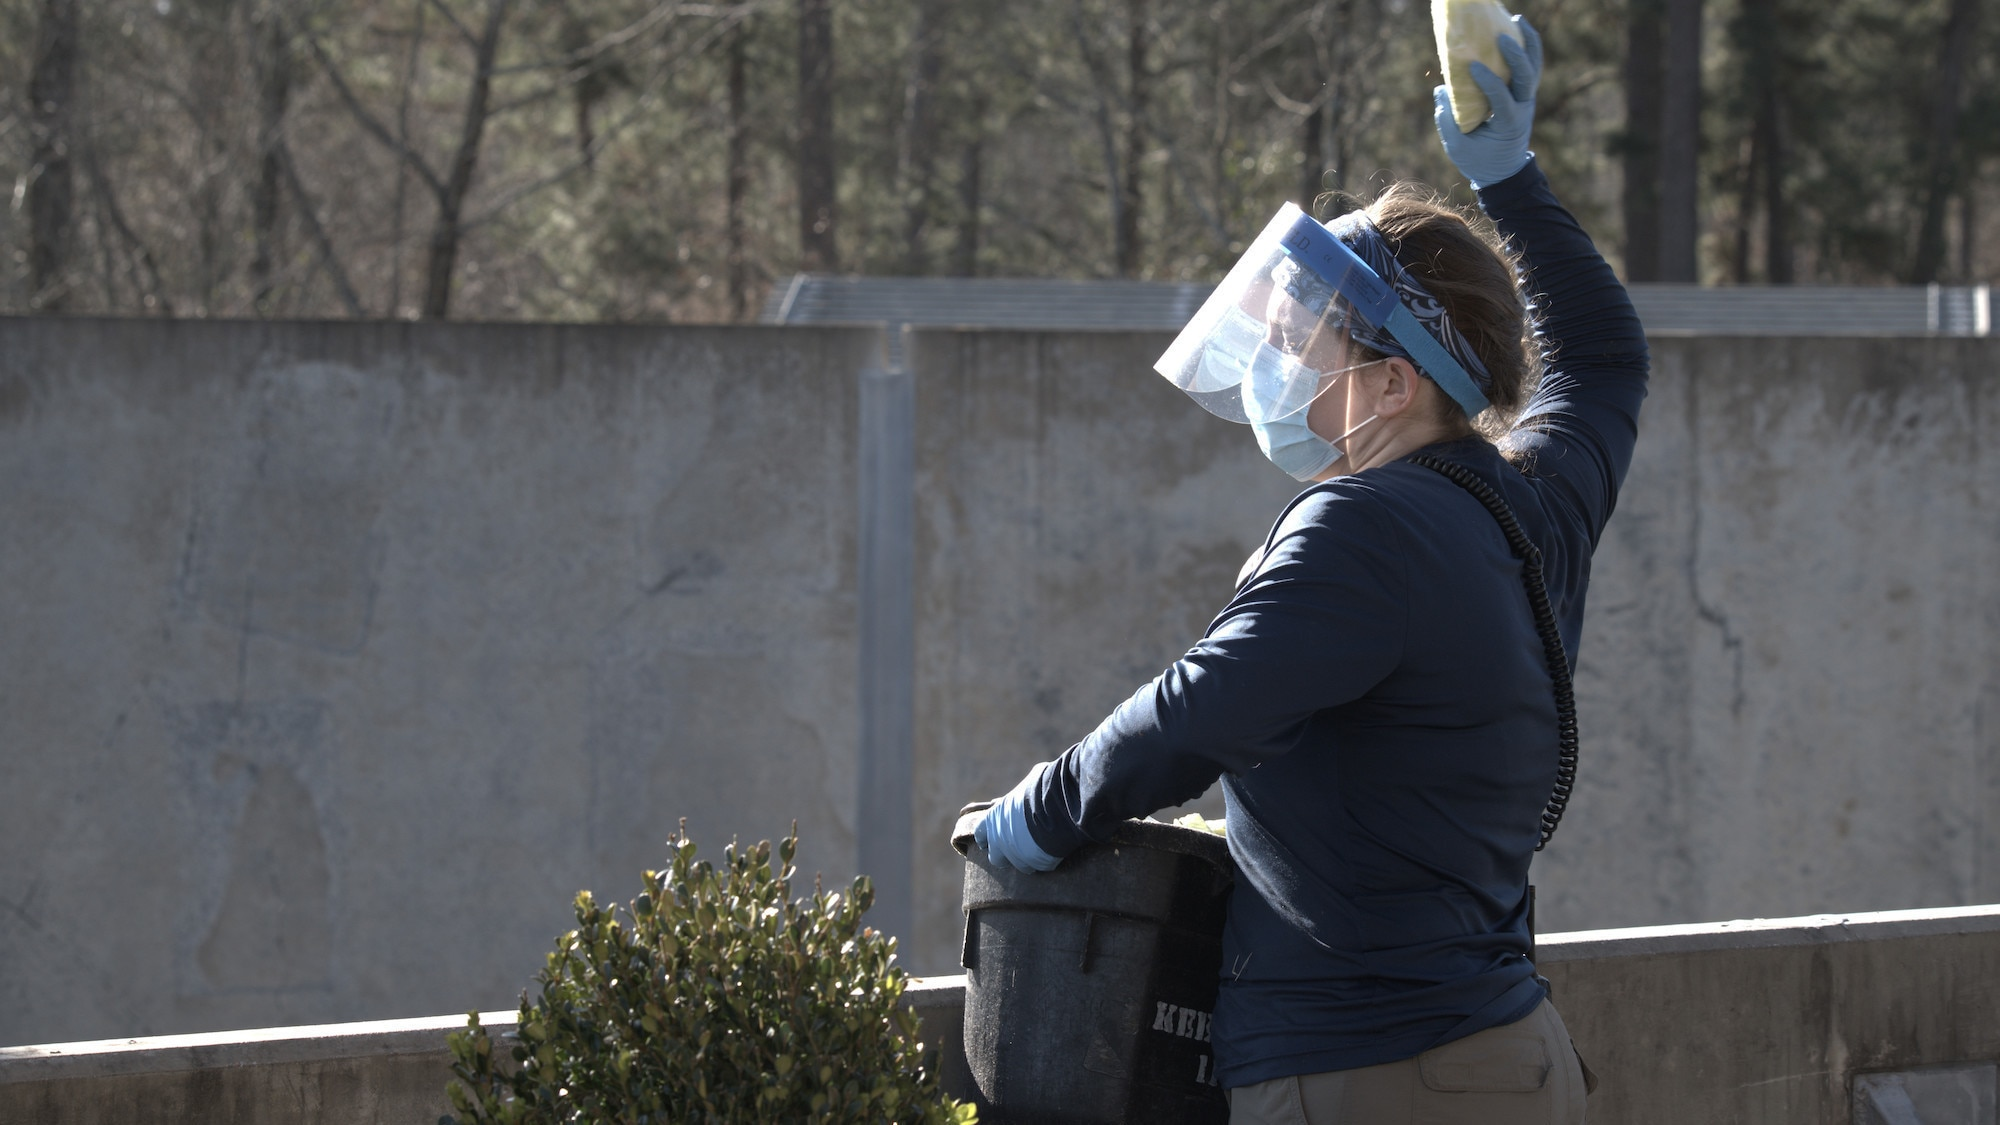 Caregiver Ellen Brady-McGaughey in PPE overlooking enclosure with bucket of cabbages. (National Geographic/Virginia Quinn)